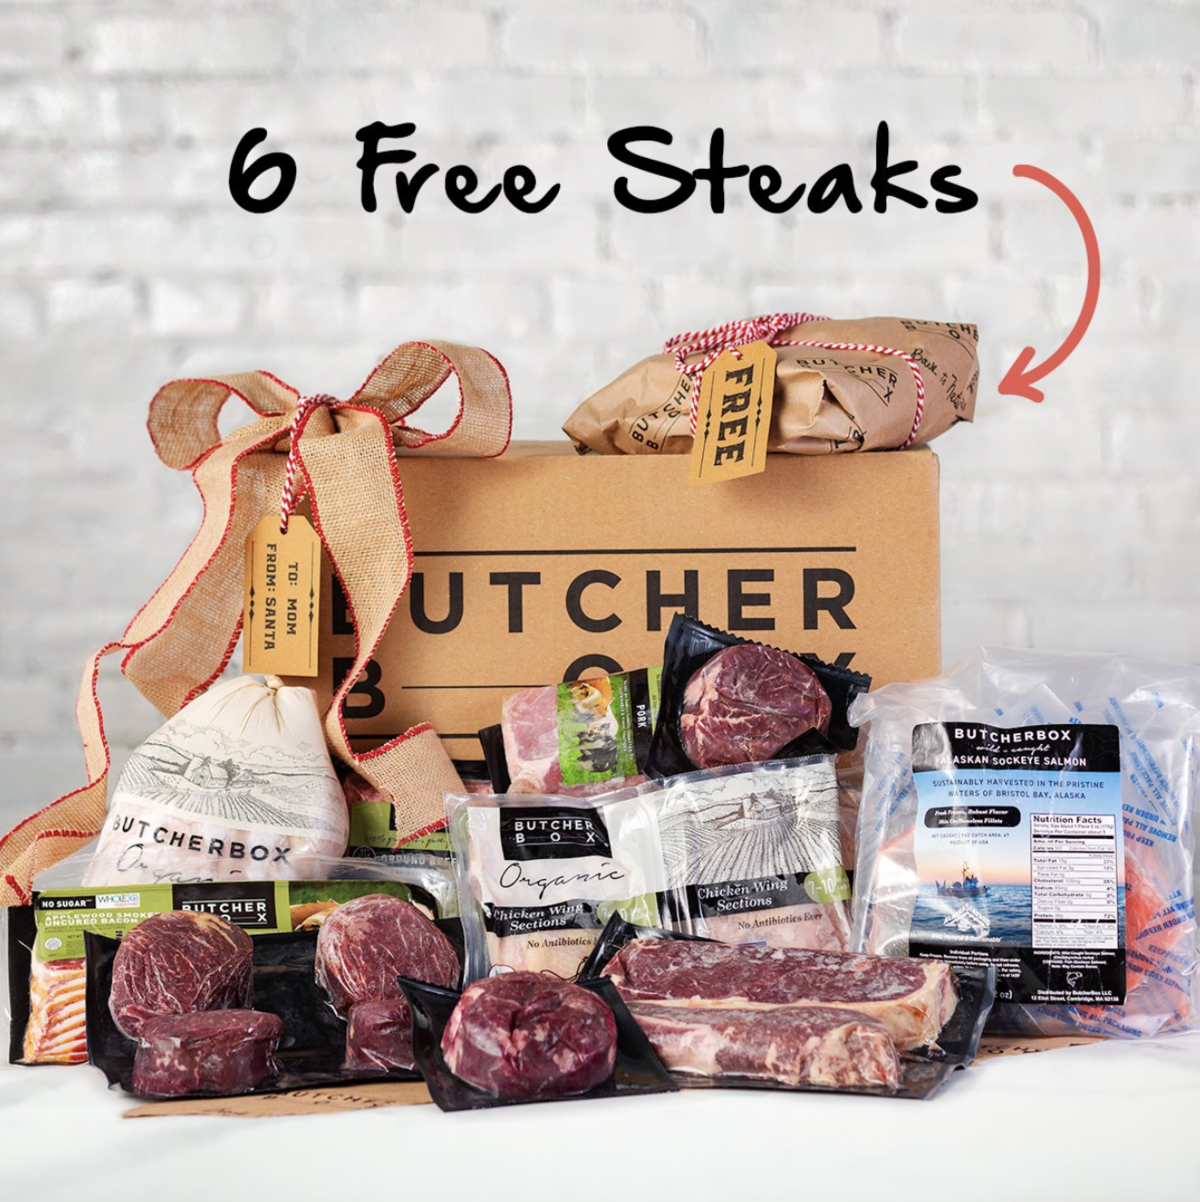 Butcher Box Cyber Monday Deal – Get 6 FREE Steaks!